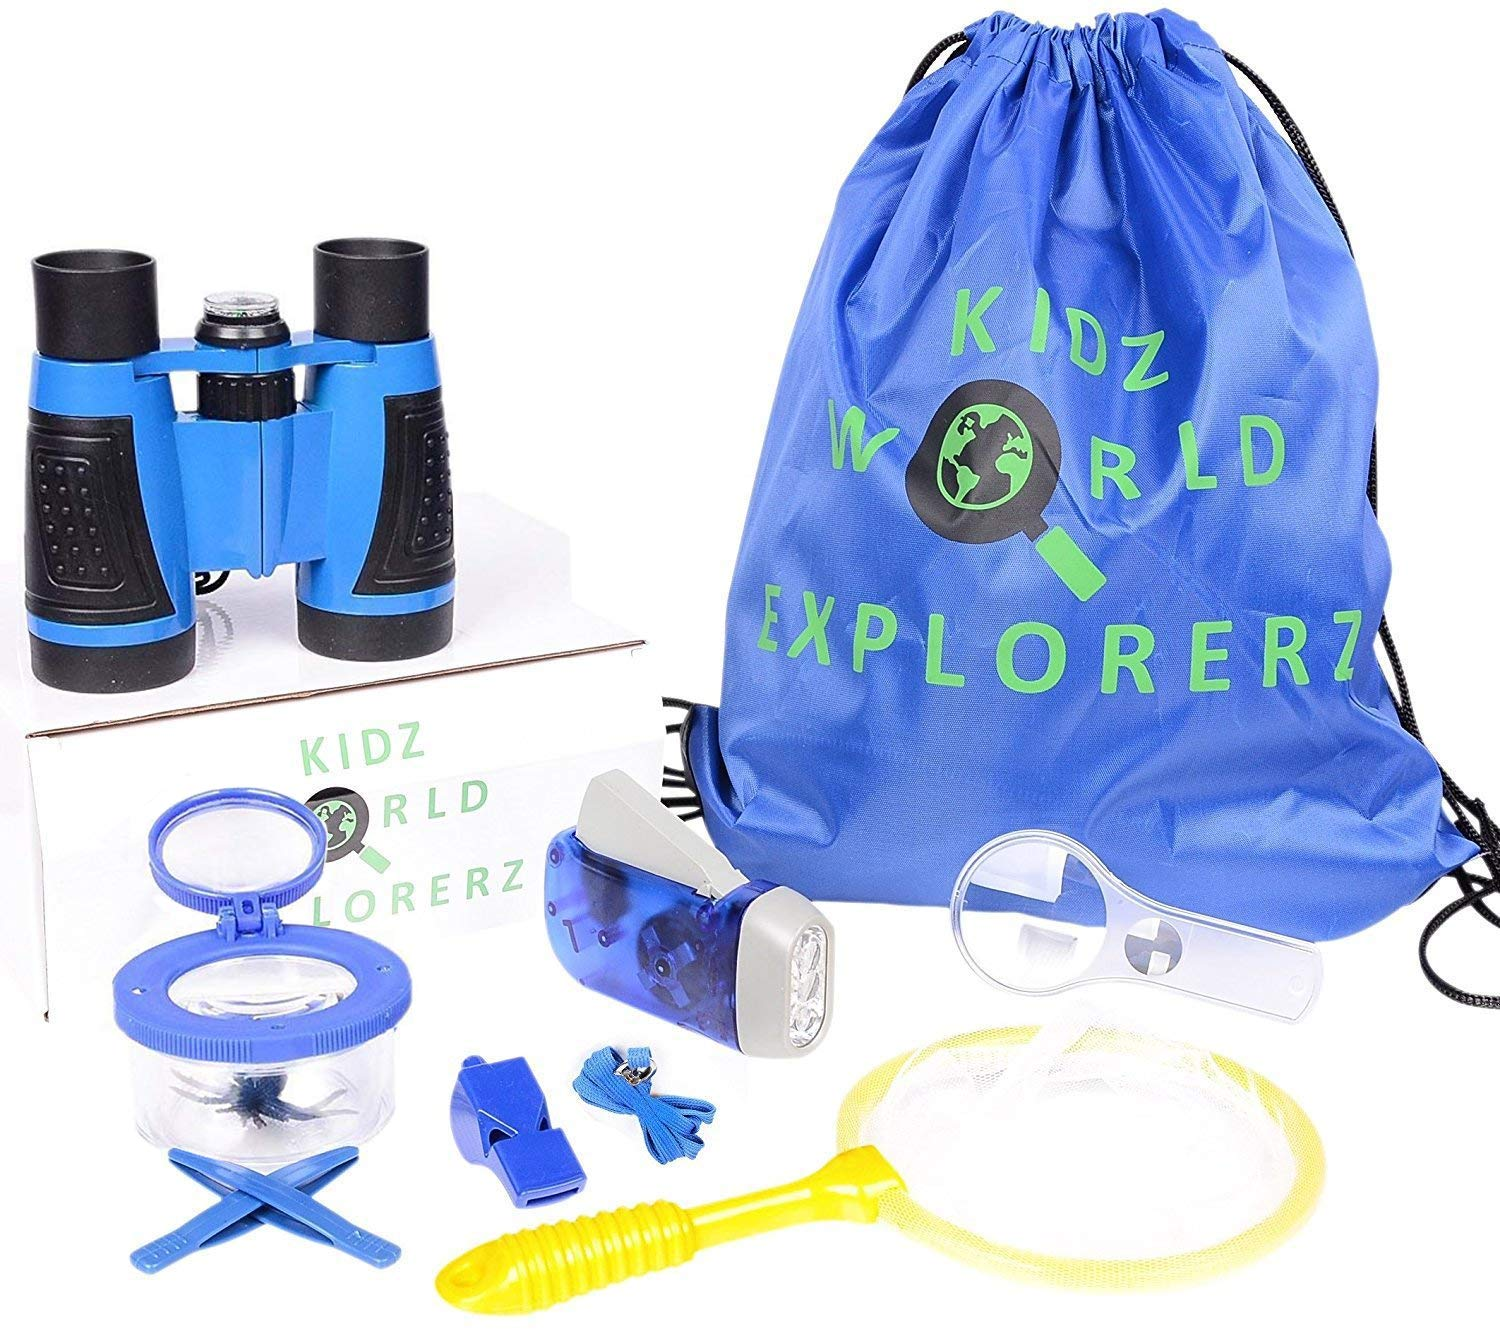 Binoculars For Kids By Olivia & Aiden - Outdoor Exploration Kit - Kids Binoculars, Compass, Hand Crank Flashlight, Whistle, Magnifying Glass, Insect Viewer Cup, Tweezers, and Backpack